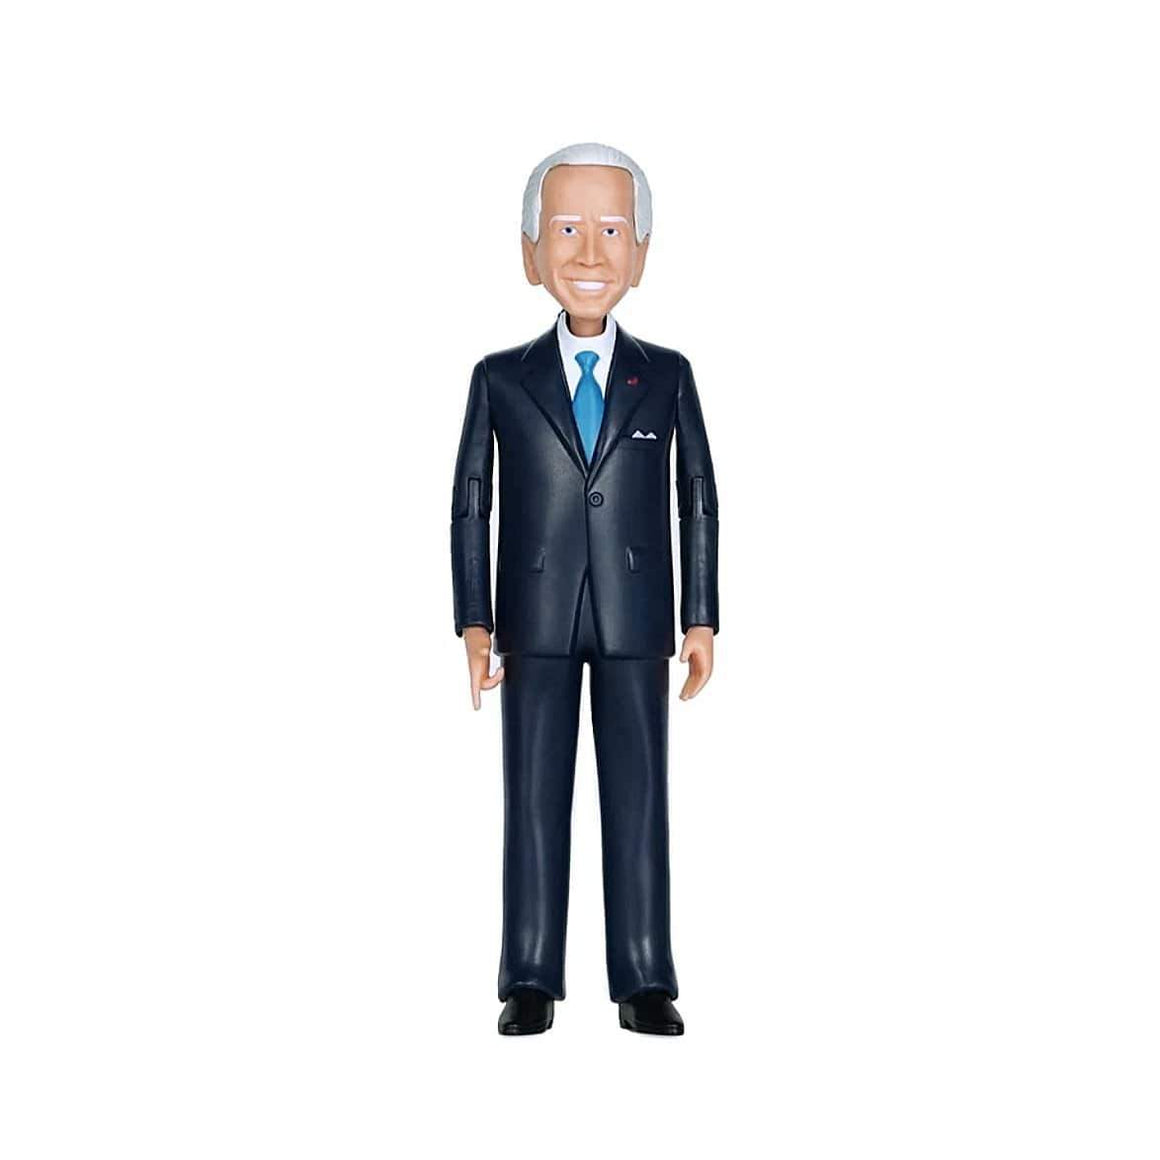 Joe Biden Action Figure by FCTRY Action Figure Creative Action Network